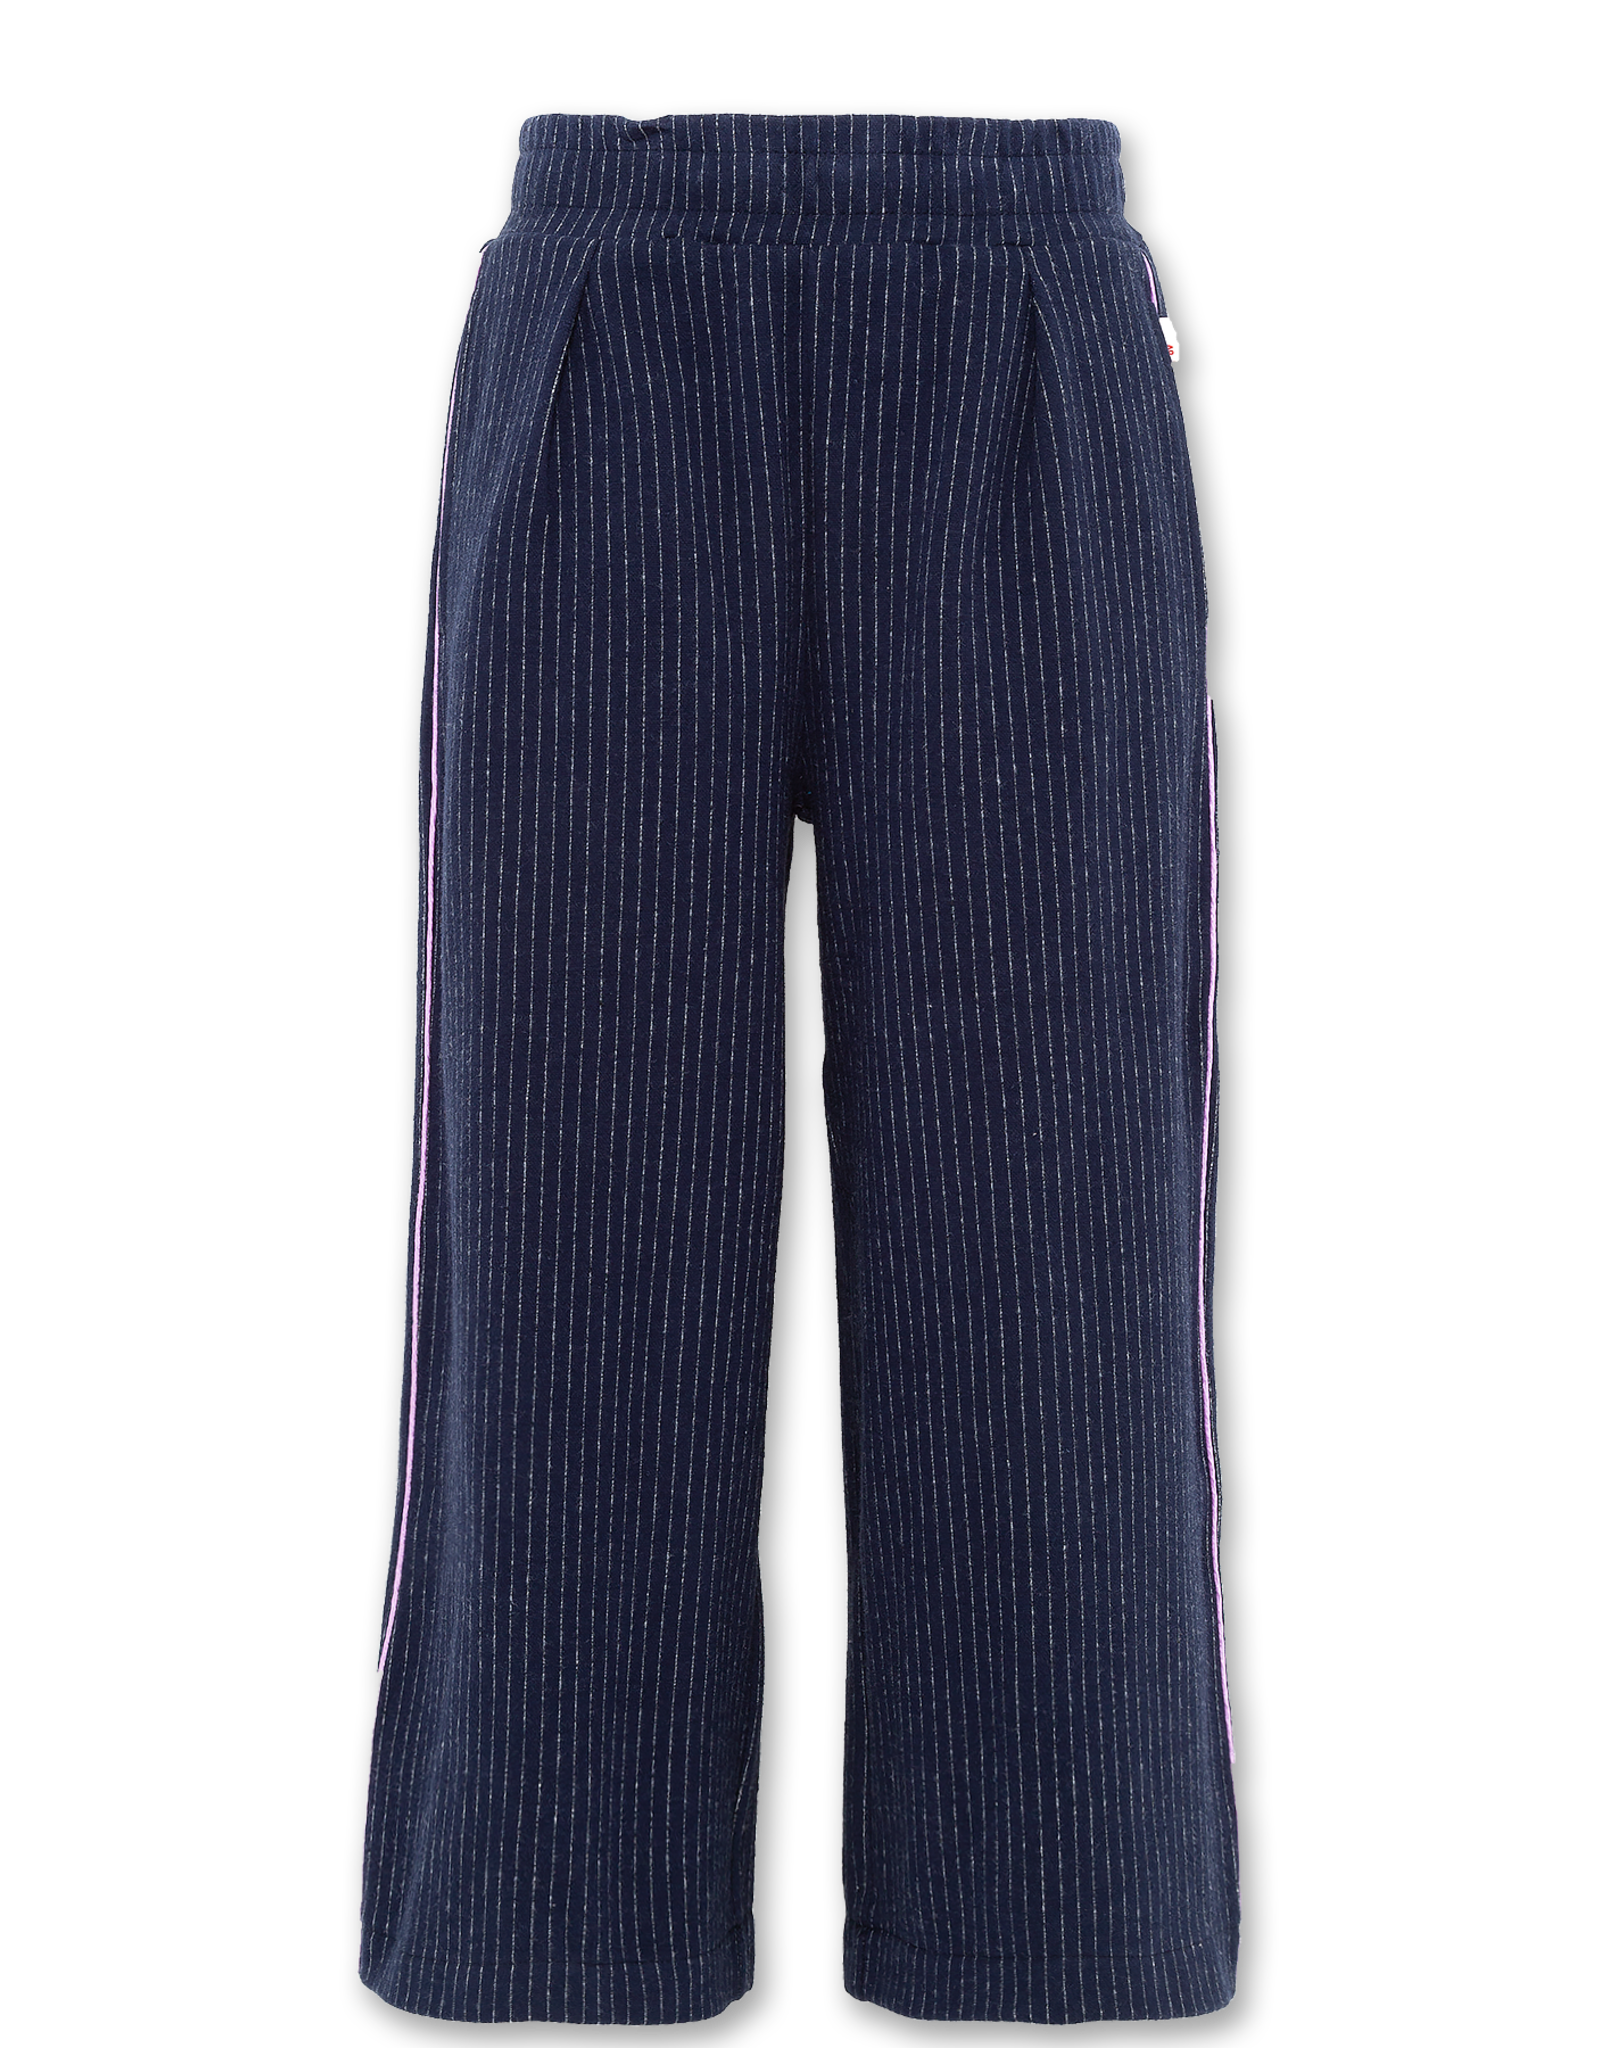 AMERICAN OUTFITTERS alicia striped pants Dark navy